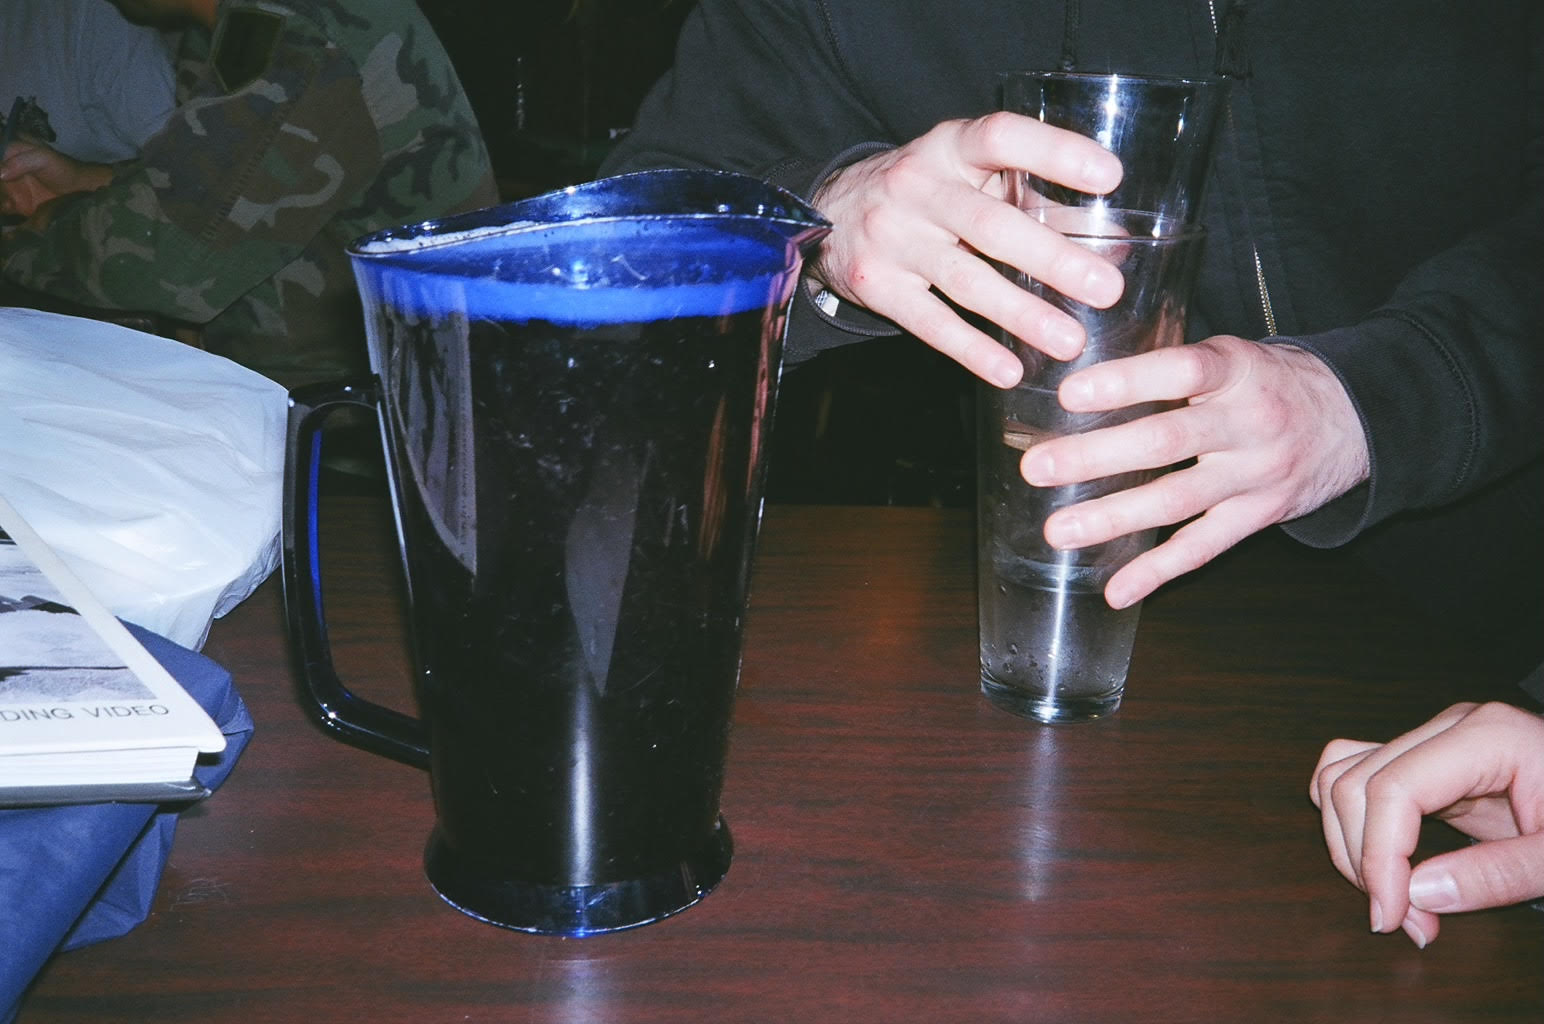 Thank you to PBR for the pitchers